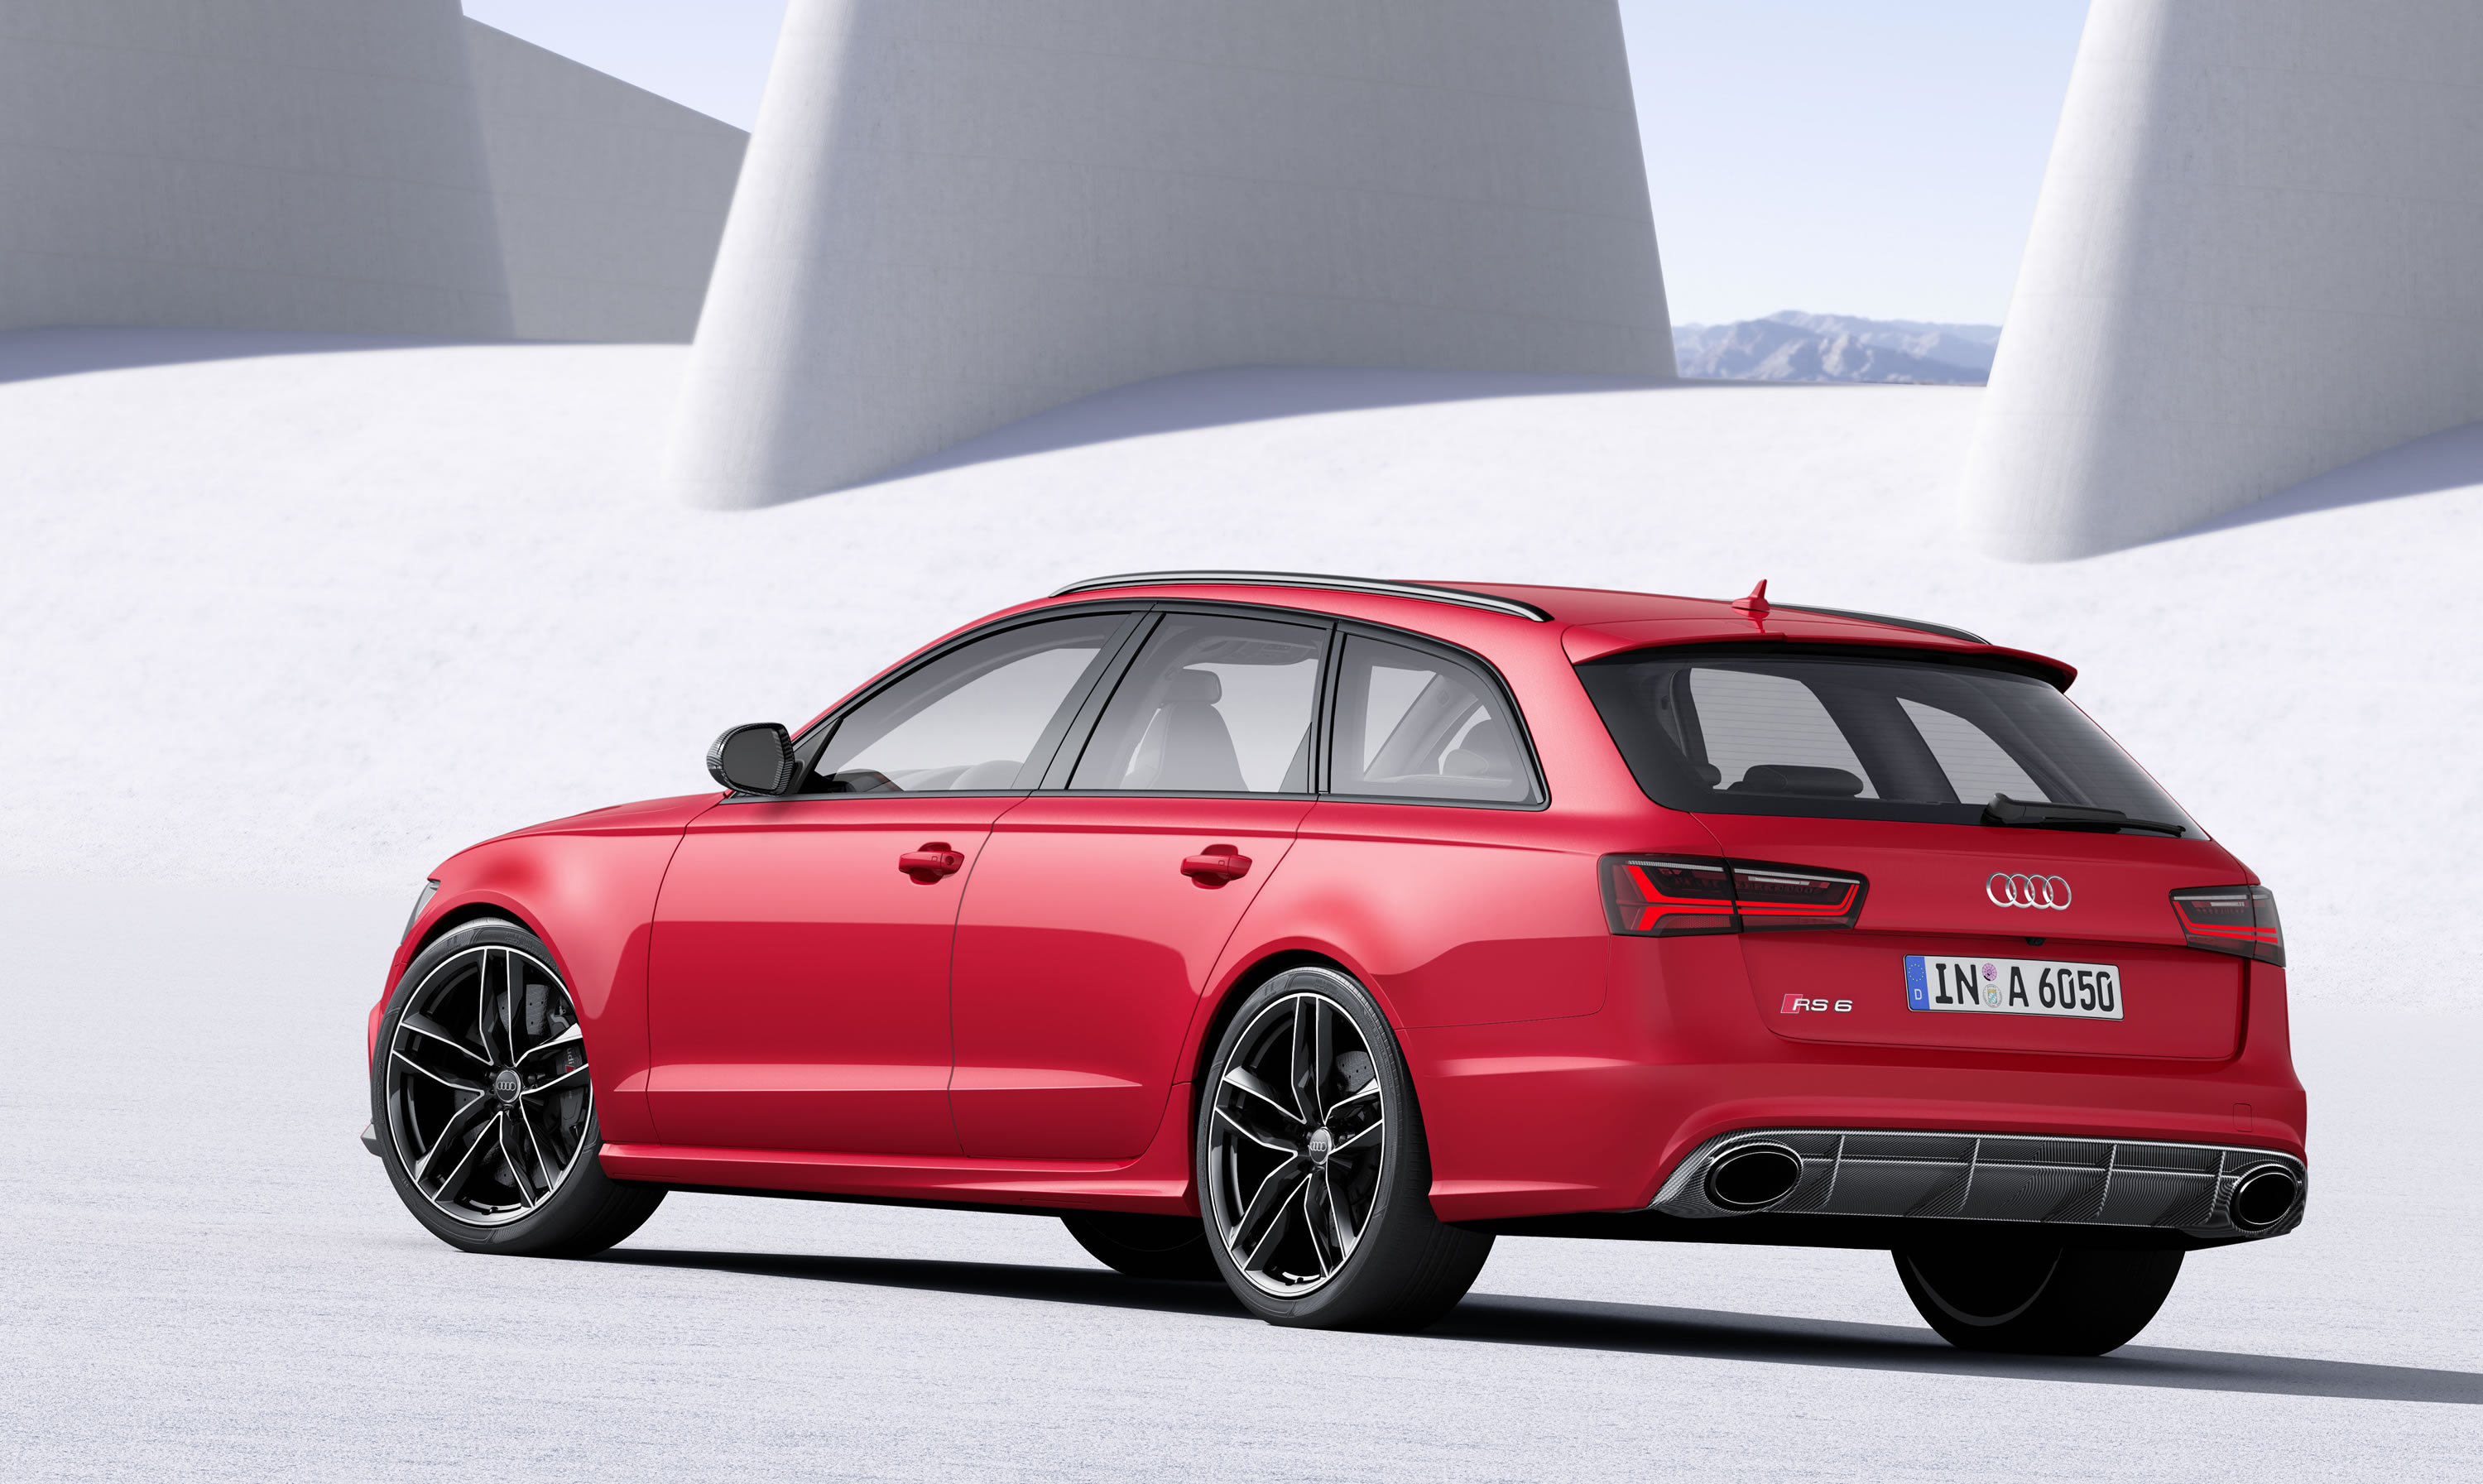 2015 audi rs 6 avant photos specs and review rs. Black Bedroom Furniture Sets. Home Design Ideas